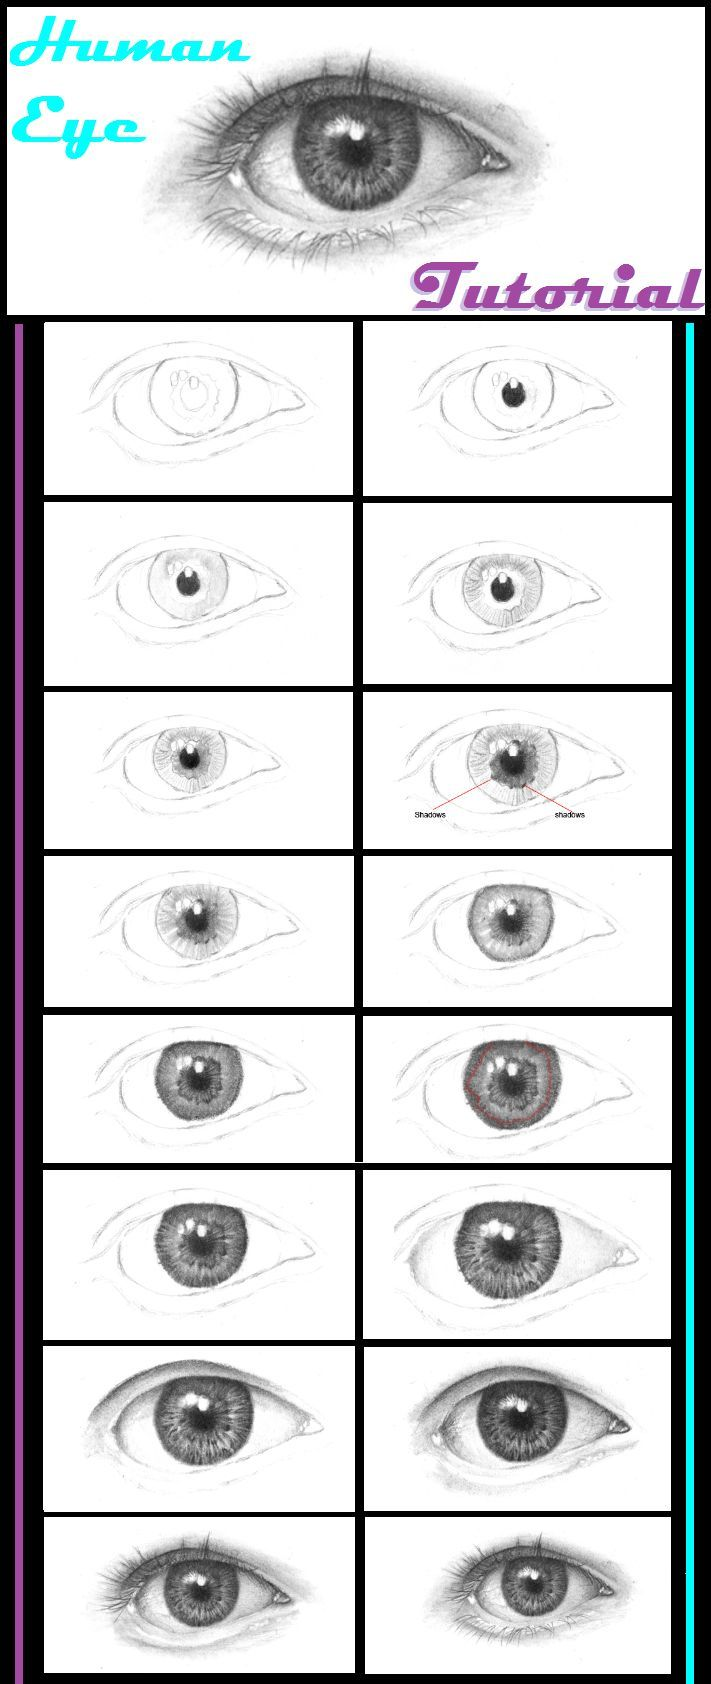 How to draw a human eye humaneyetutorial drawing how to draw a human eye humaneyetutorial ccuart Gallery